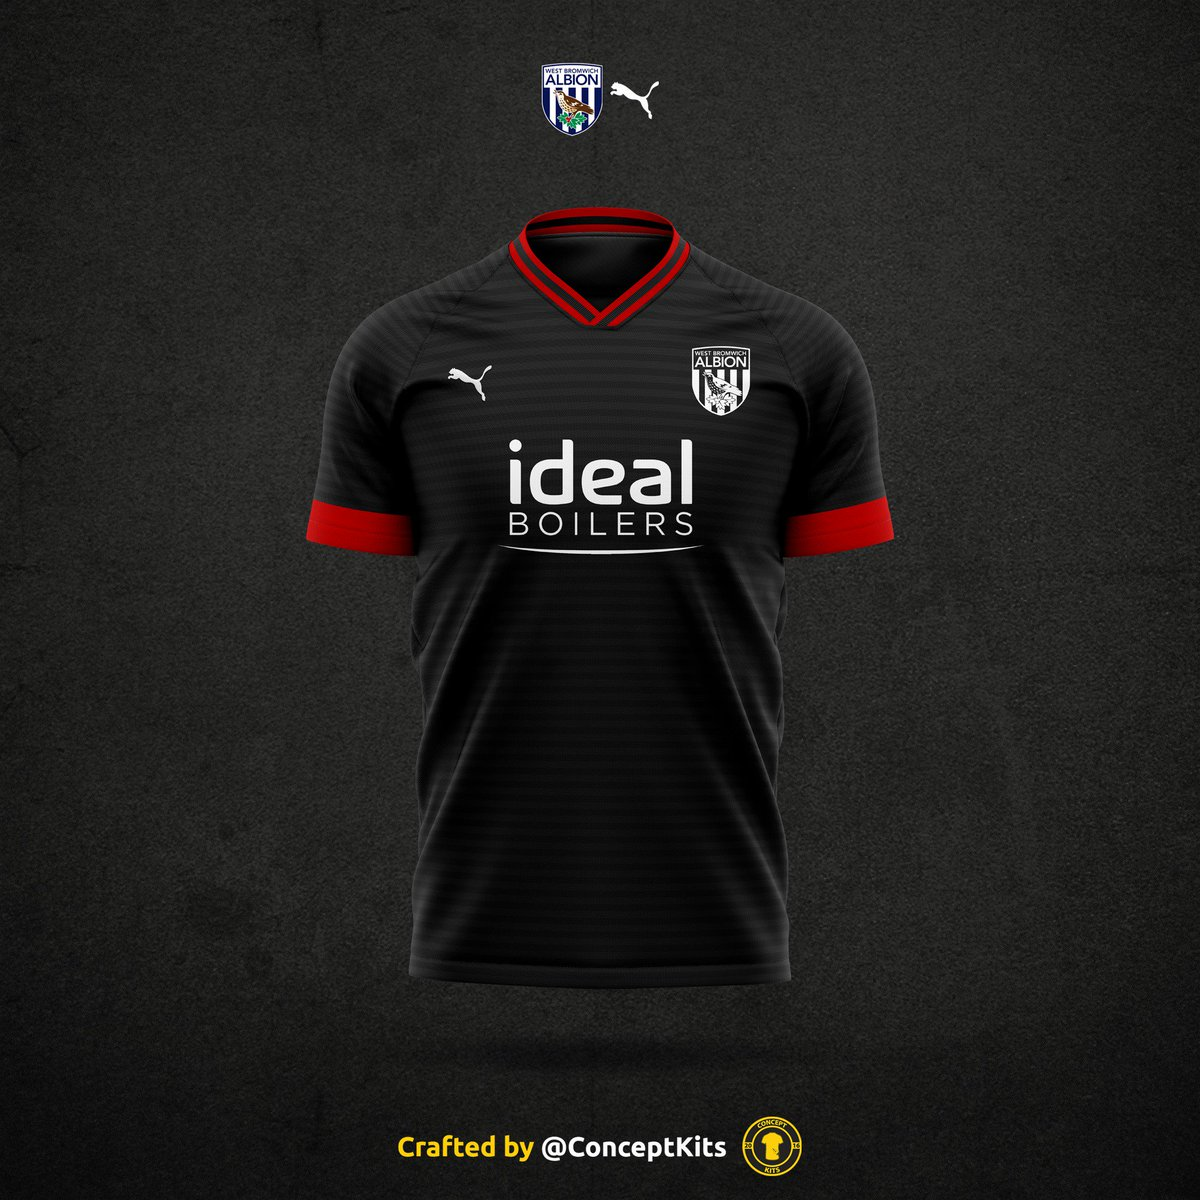 Concept Kits On Twitter West Bromwich Albion Home Away Kit Concepts For The 2019 20 Season Visit Our Website Over At Https T Co Kbhpheg4hb To See More Of Our Work And What We Do